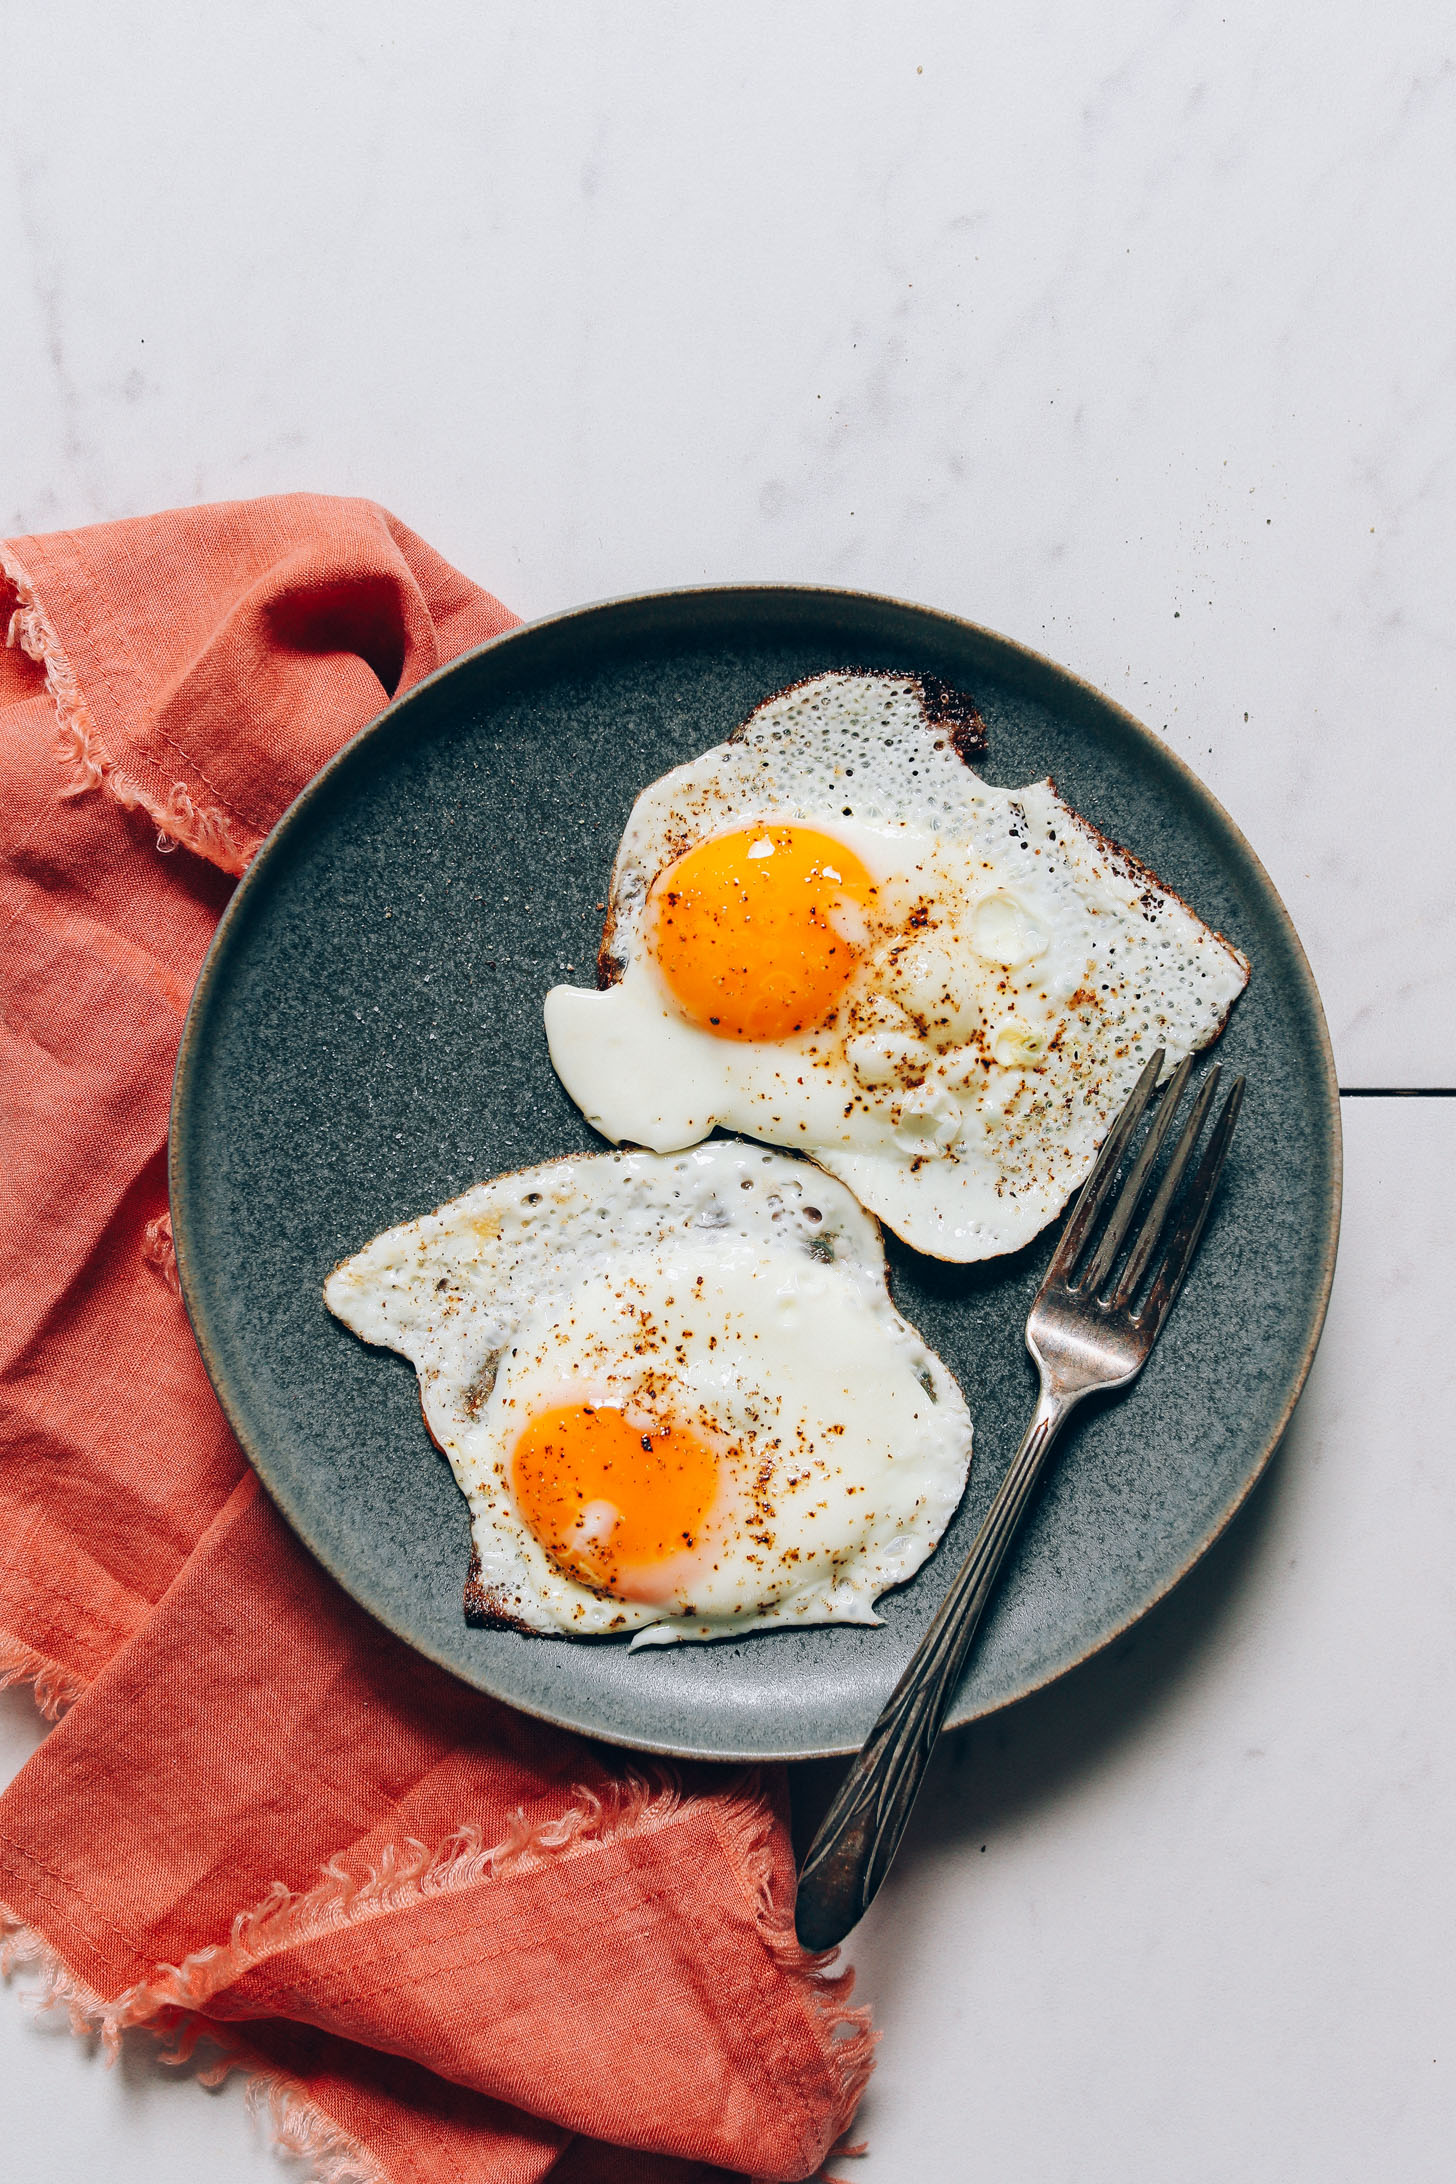 Plate of two perfectly cooked runny yolk eggs for our tutorial on How to Cook an Egg